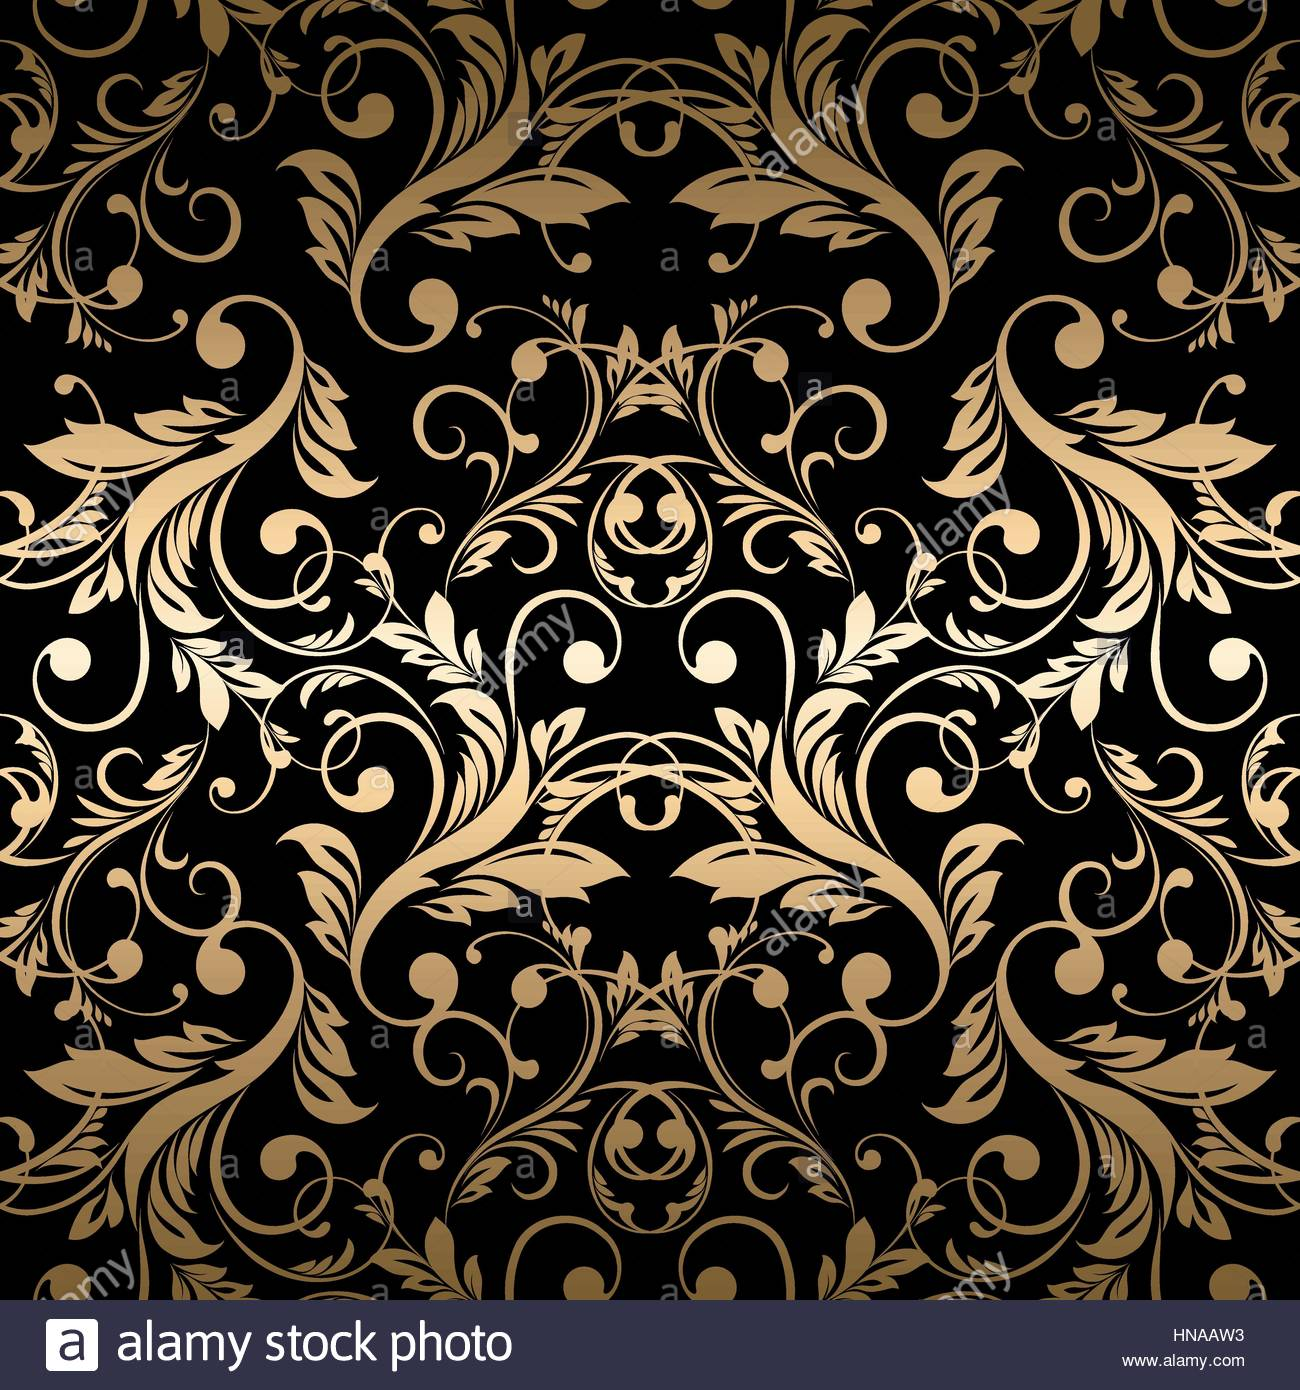 Luxury Golden Wallpaper Vintage Seamless Damask Pattern Vector Background